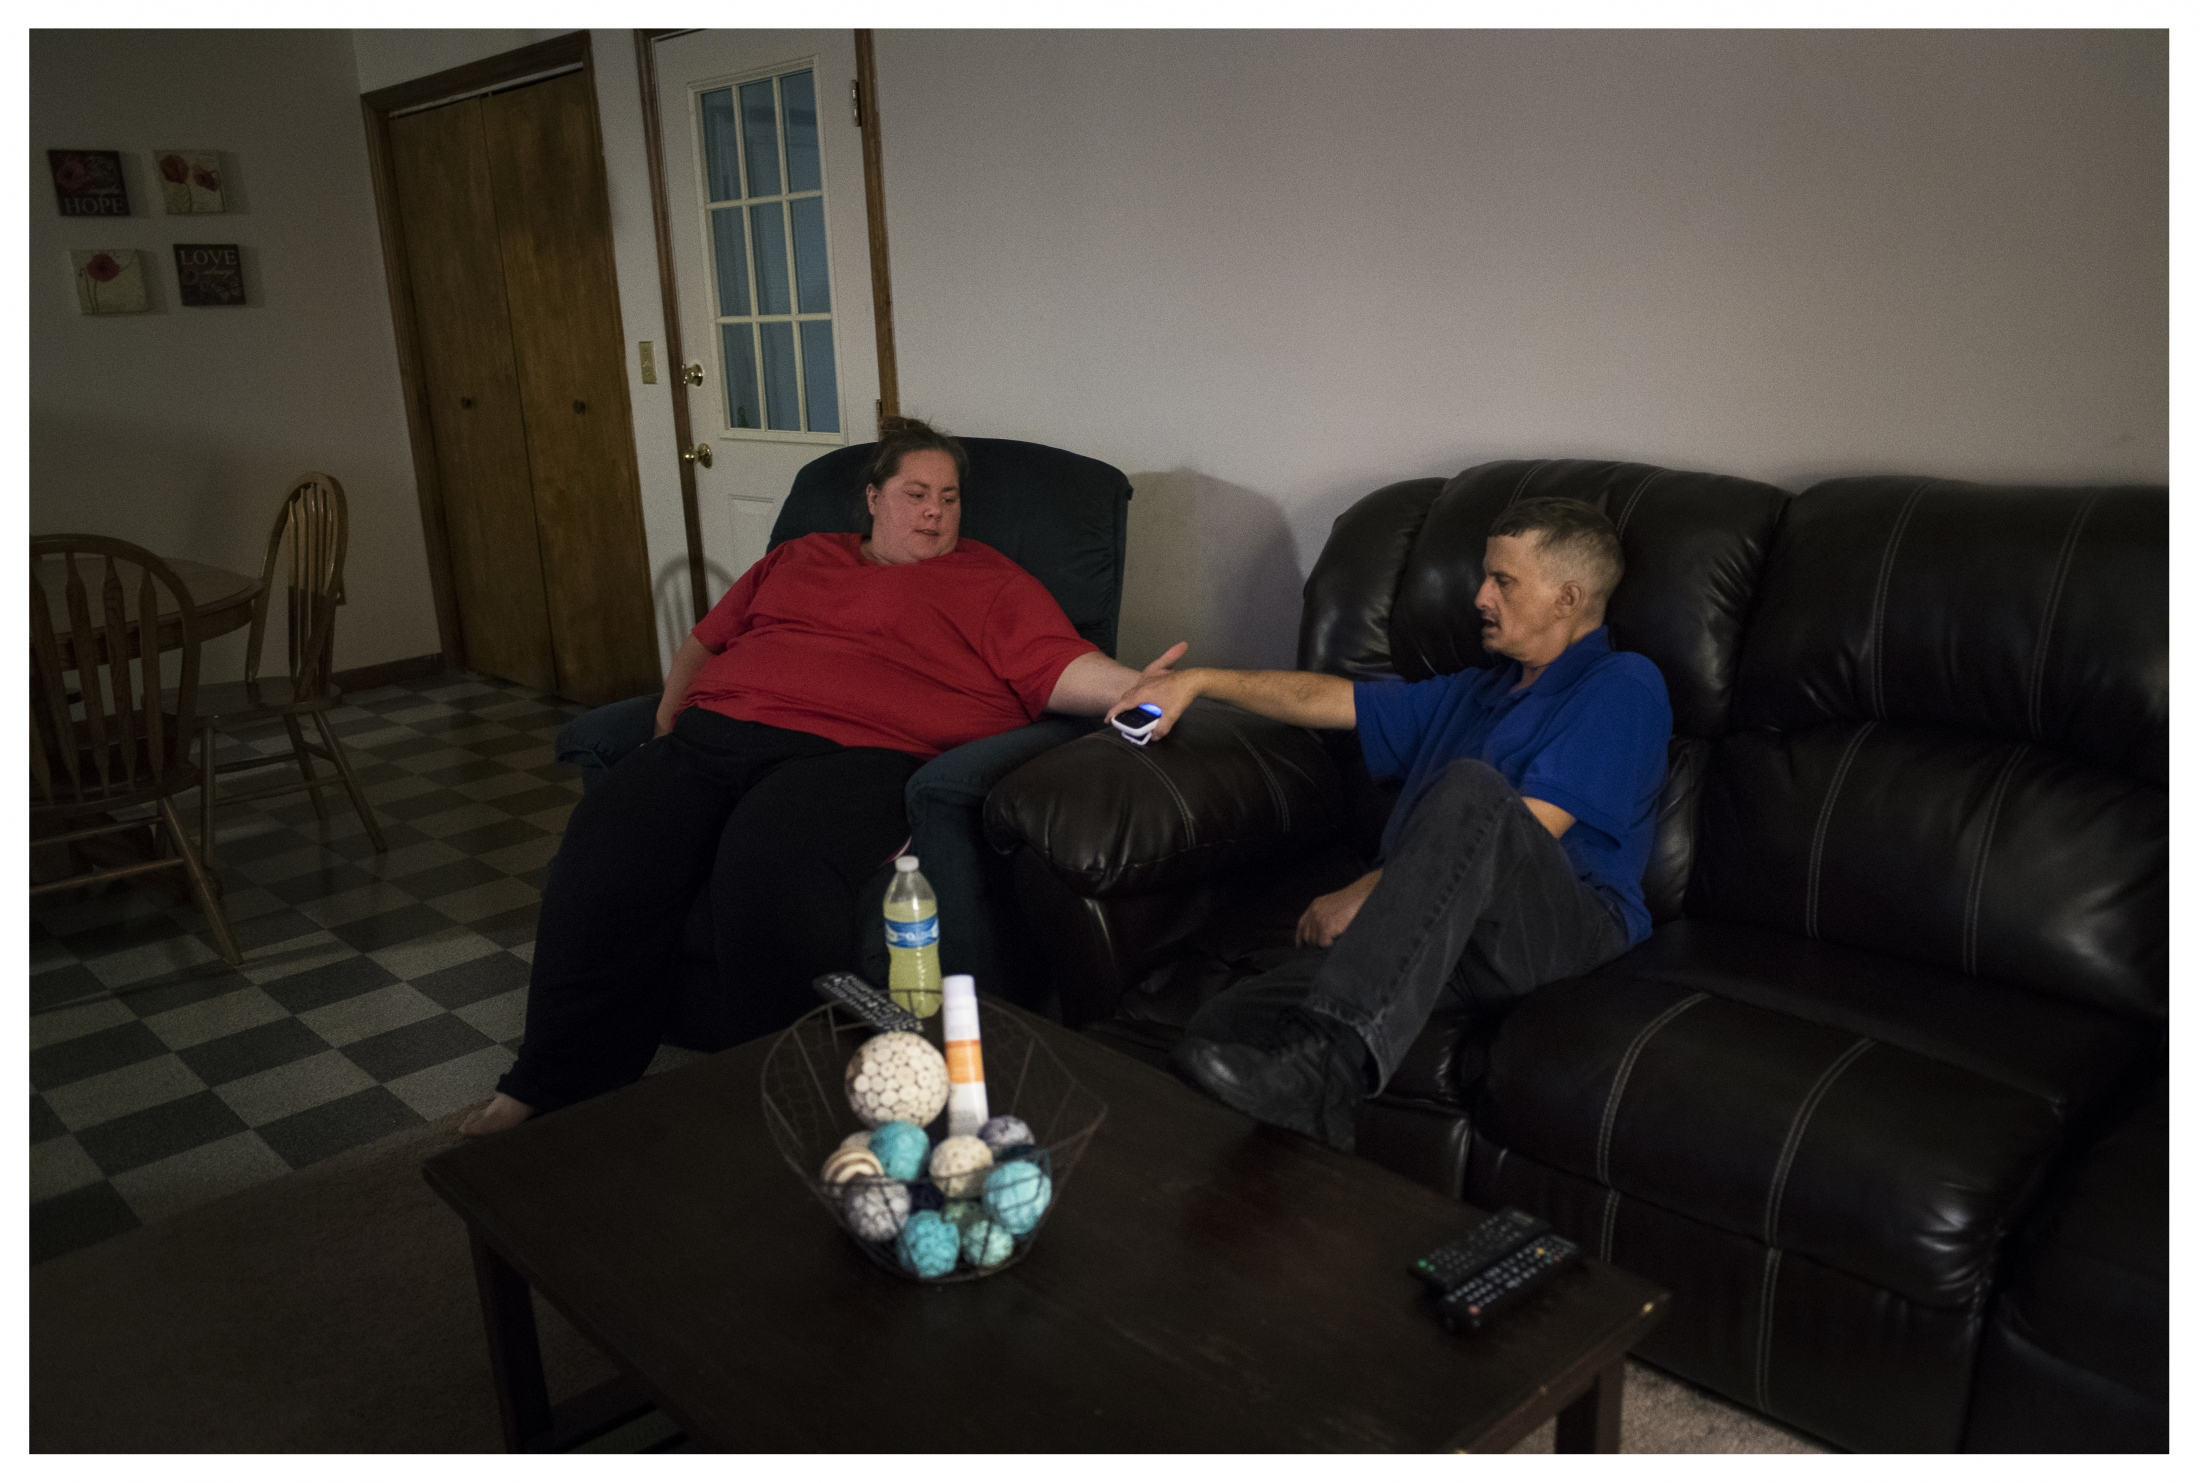 Natalie Weaver, a House Manager from D&S Community Services, holds Tony's hand after his work shift. Natalie is one of three managers who rotate residence in the home to support Tony and his roommate.